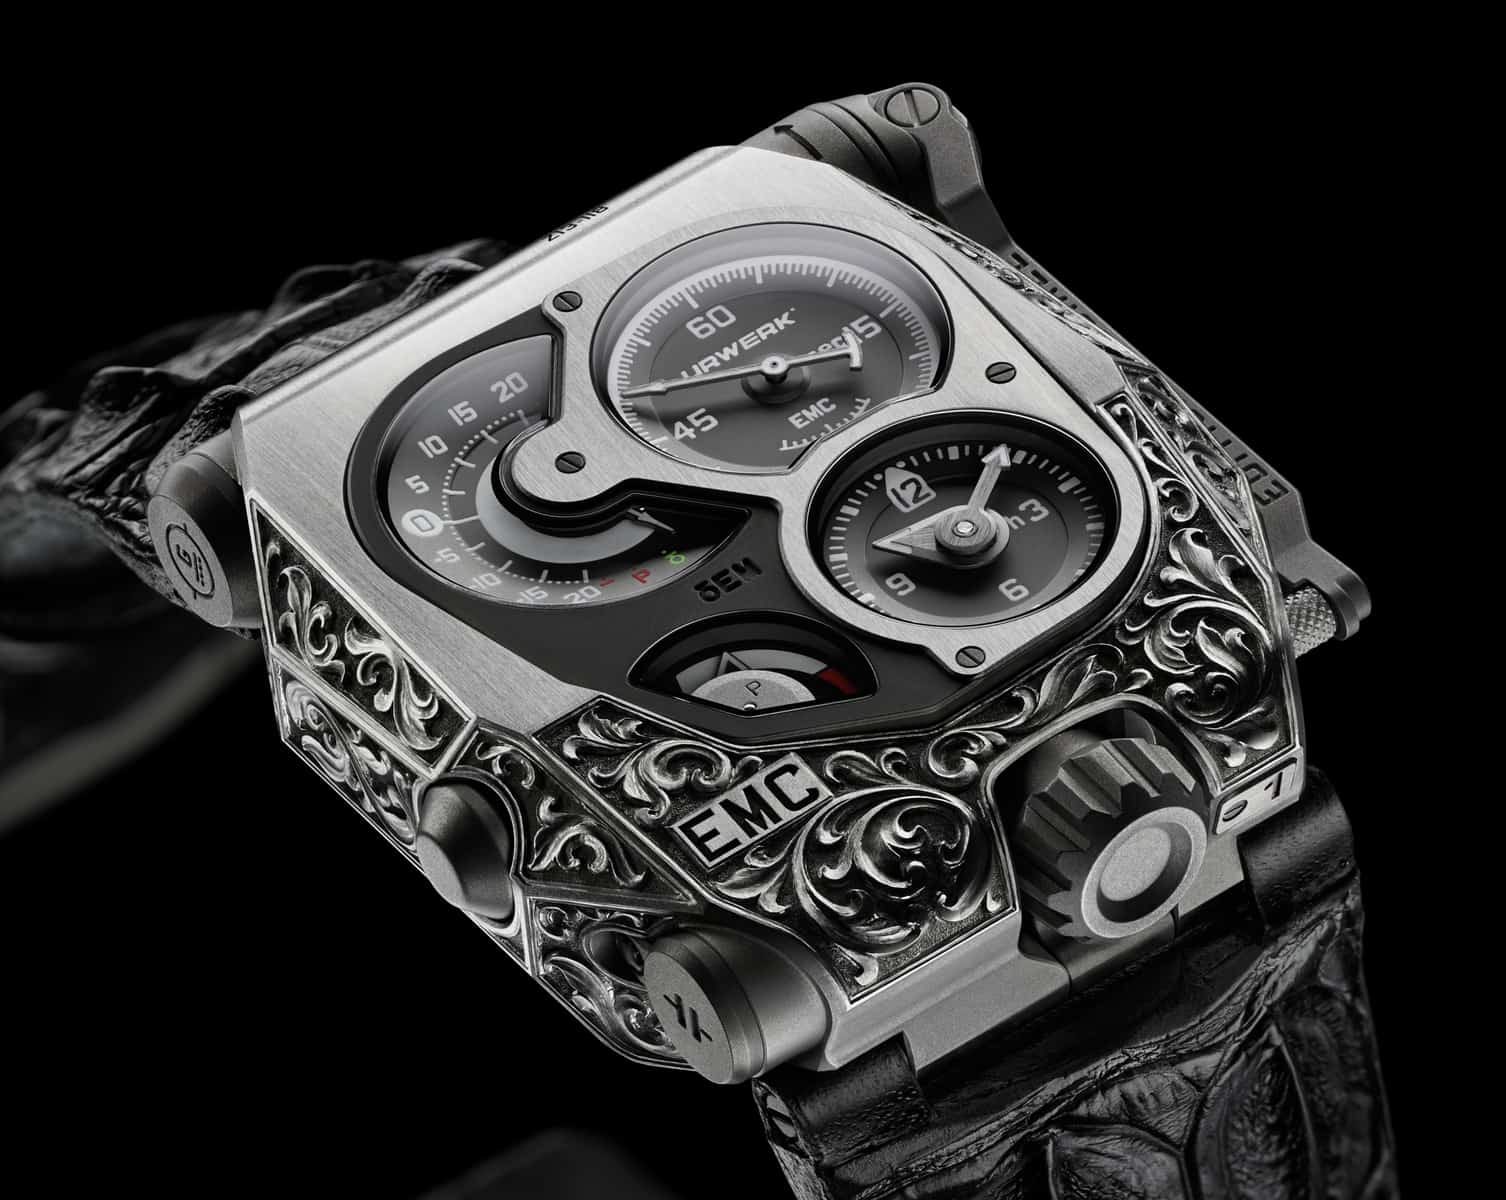 The Urwerk EMC Pistol Offers the Most Precise Measurement Possible